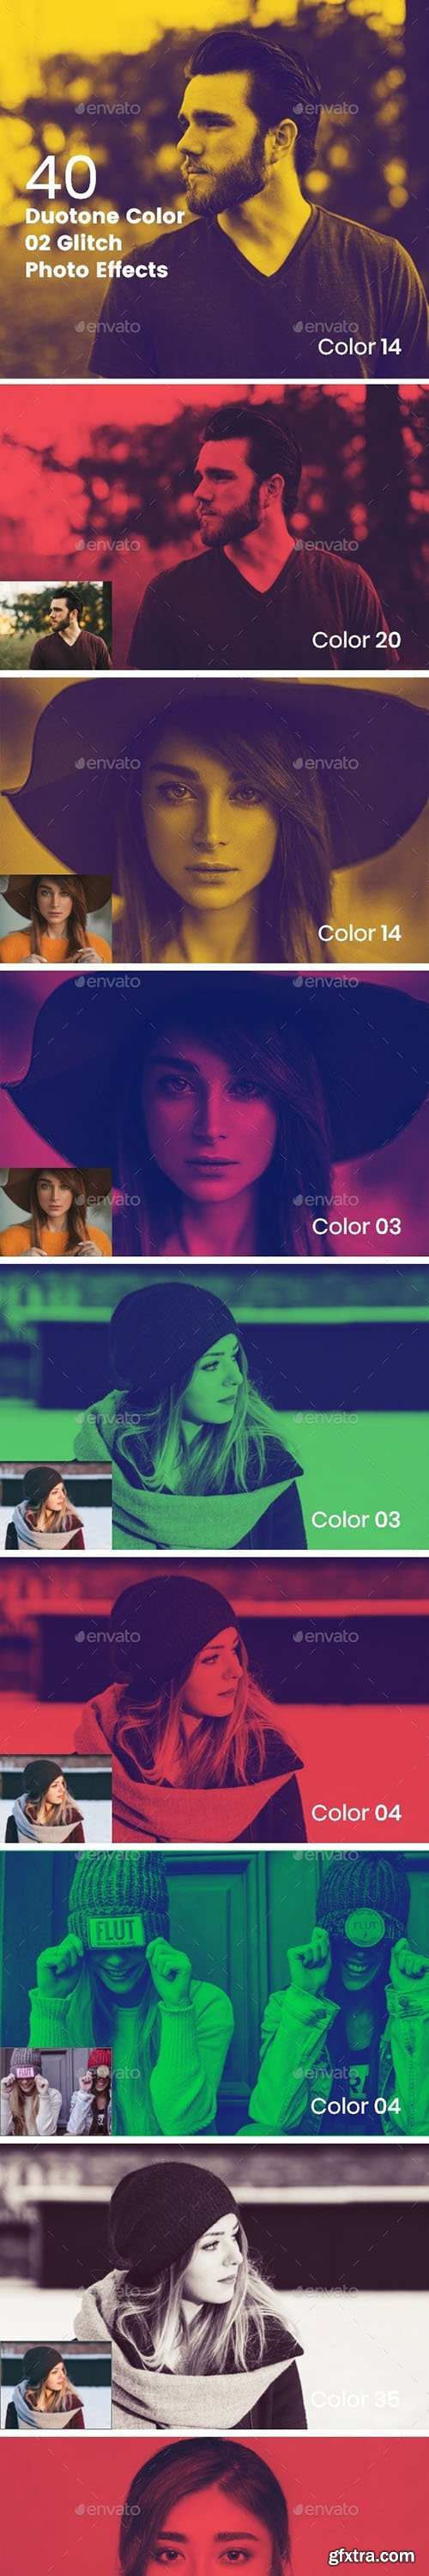 GraphicRiver - Duotone Color Effects Photo Template 27693687